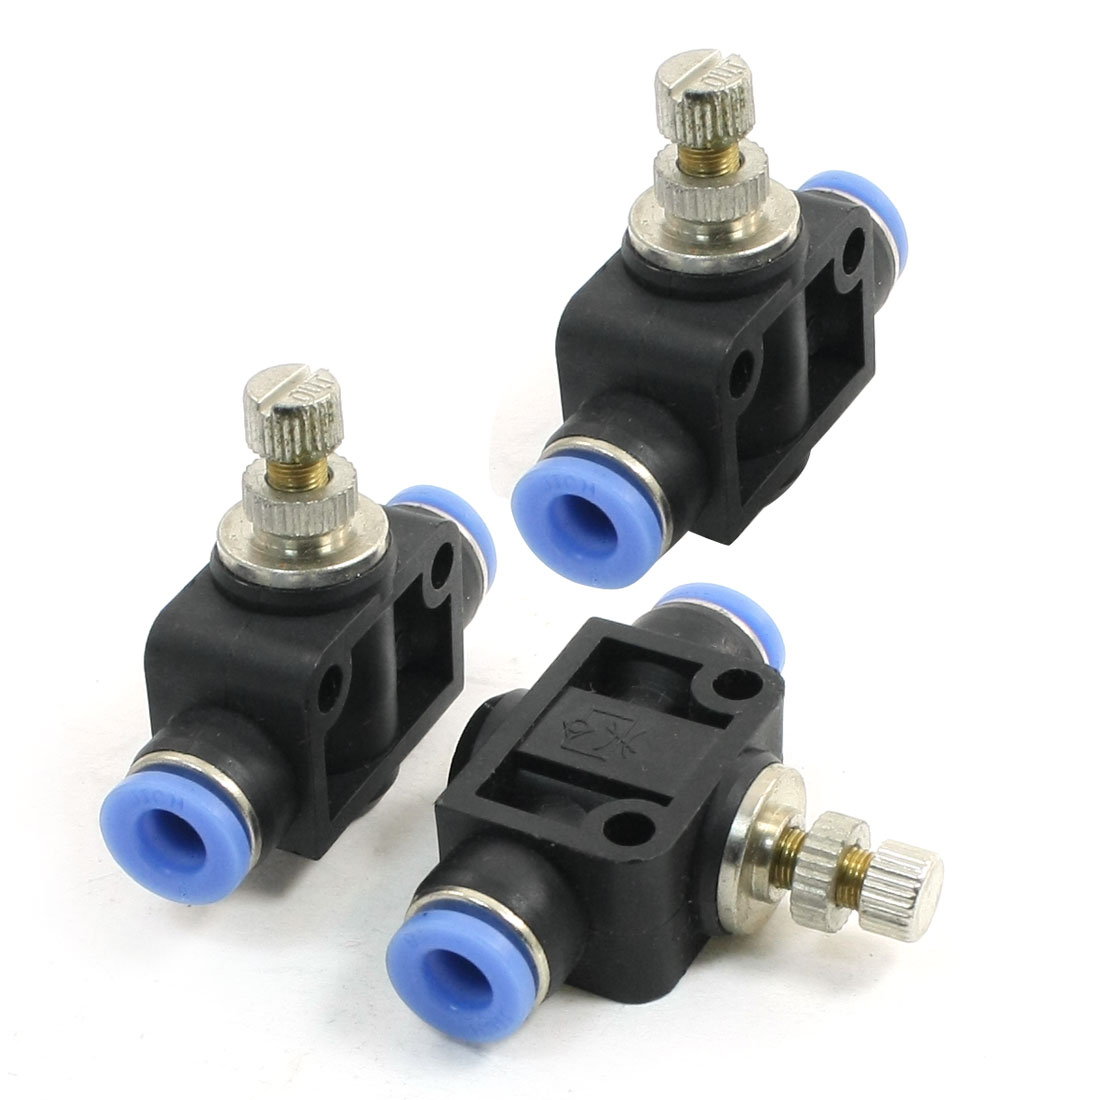 Air Pneumatic Quick Fitting 6mm to 6mm Push In Speed Controller Valve 3pcs